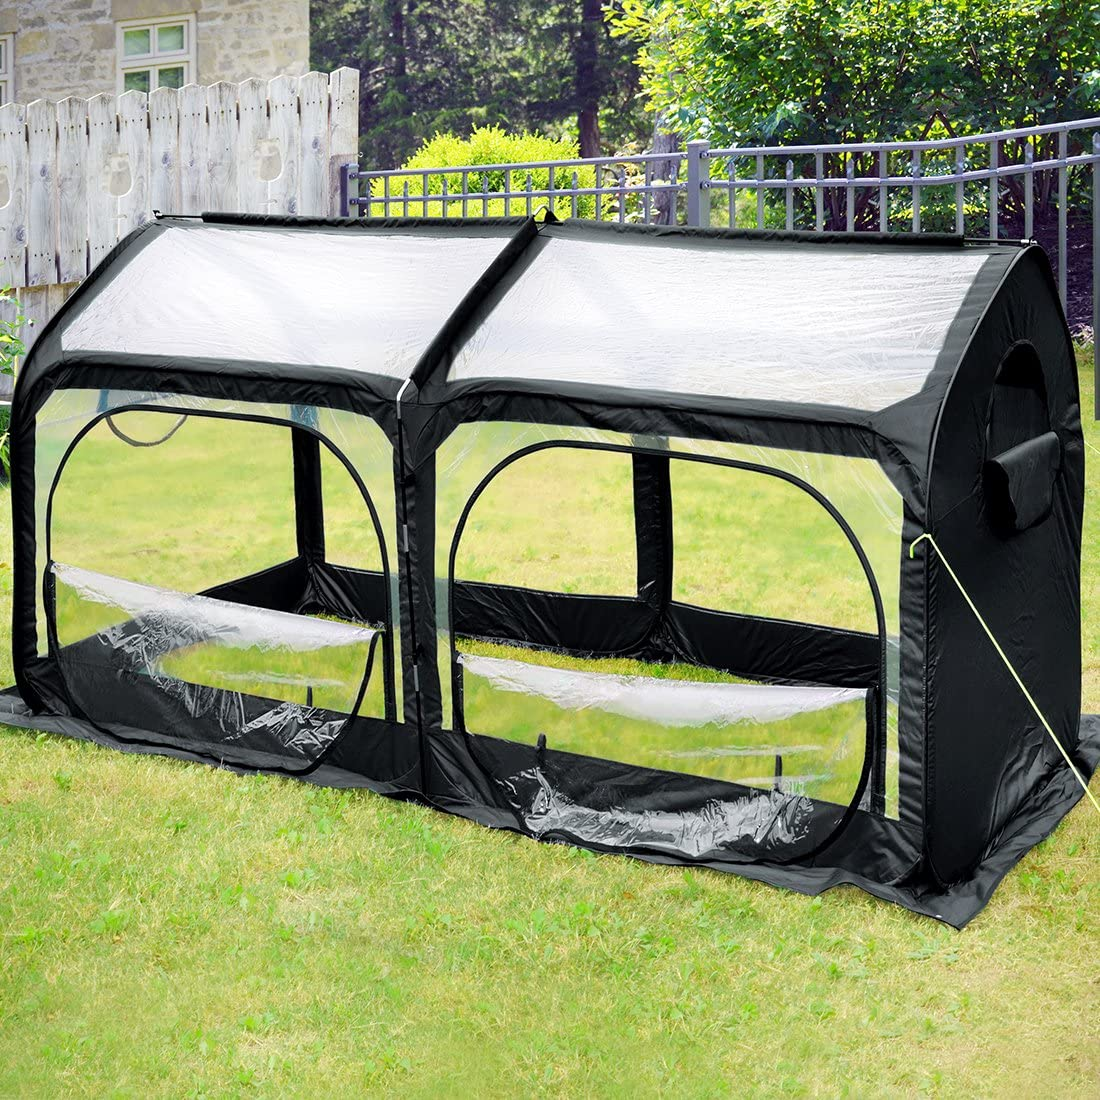 Quictent Pop up Greenhouse Passed SGS Test Eco-Friendly Fiberglass Poles Overlong Cover 6 Stakes 98 x 49 x 53 Inches Mini Portable Green House W/ 2 Zipper Doors (Black)